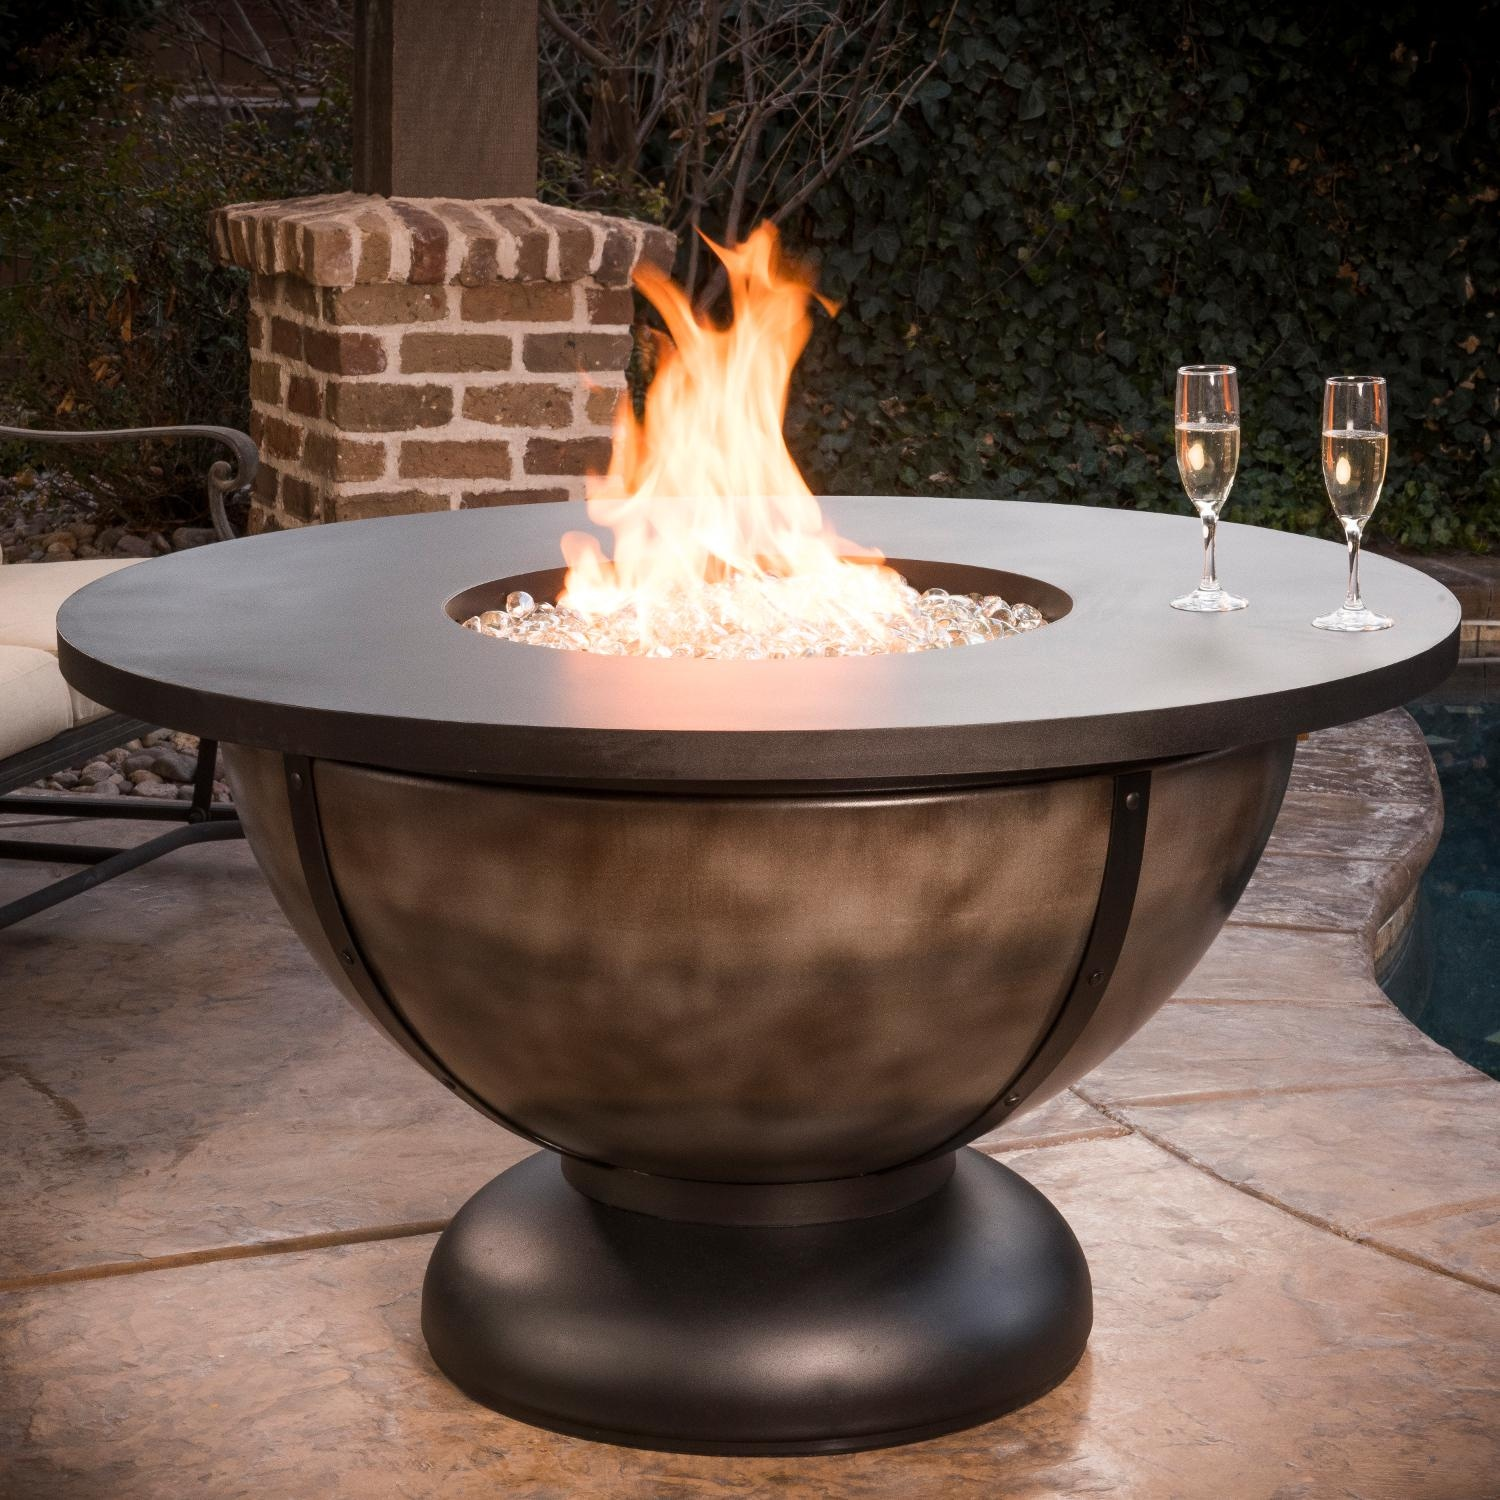 Classic Outdoor Patio Table Fire Pits  Patio Table Fire Pit Ideas